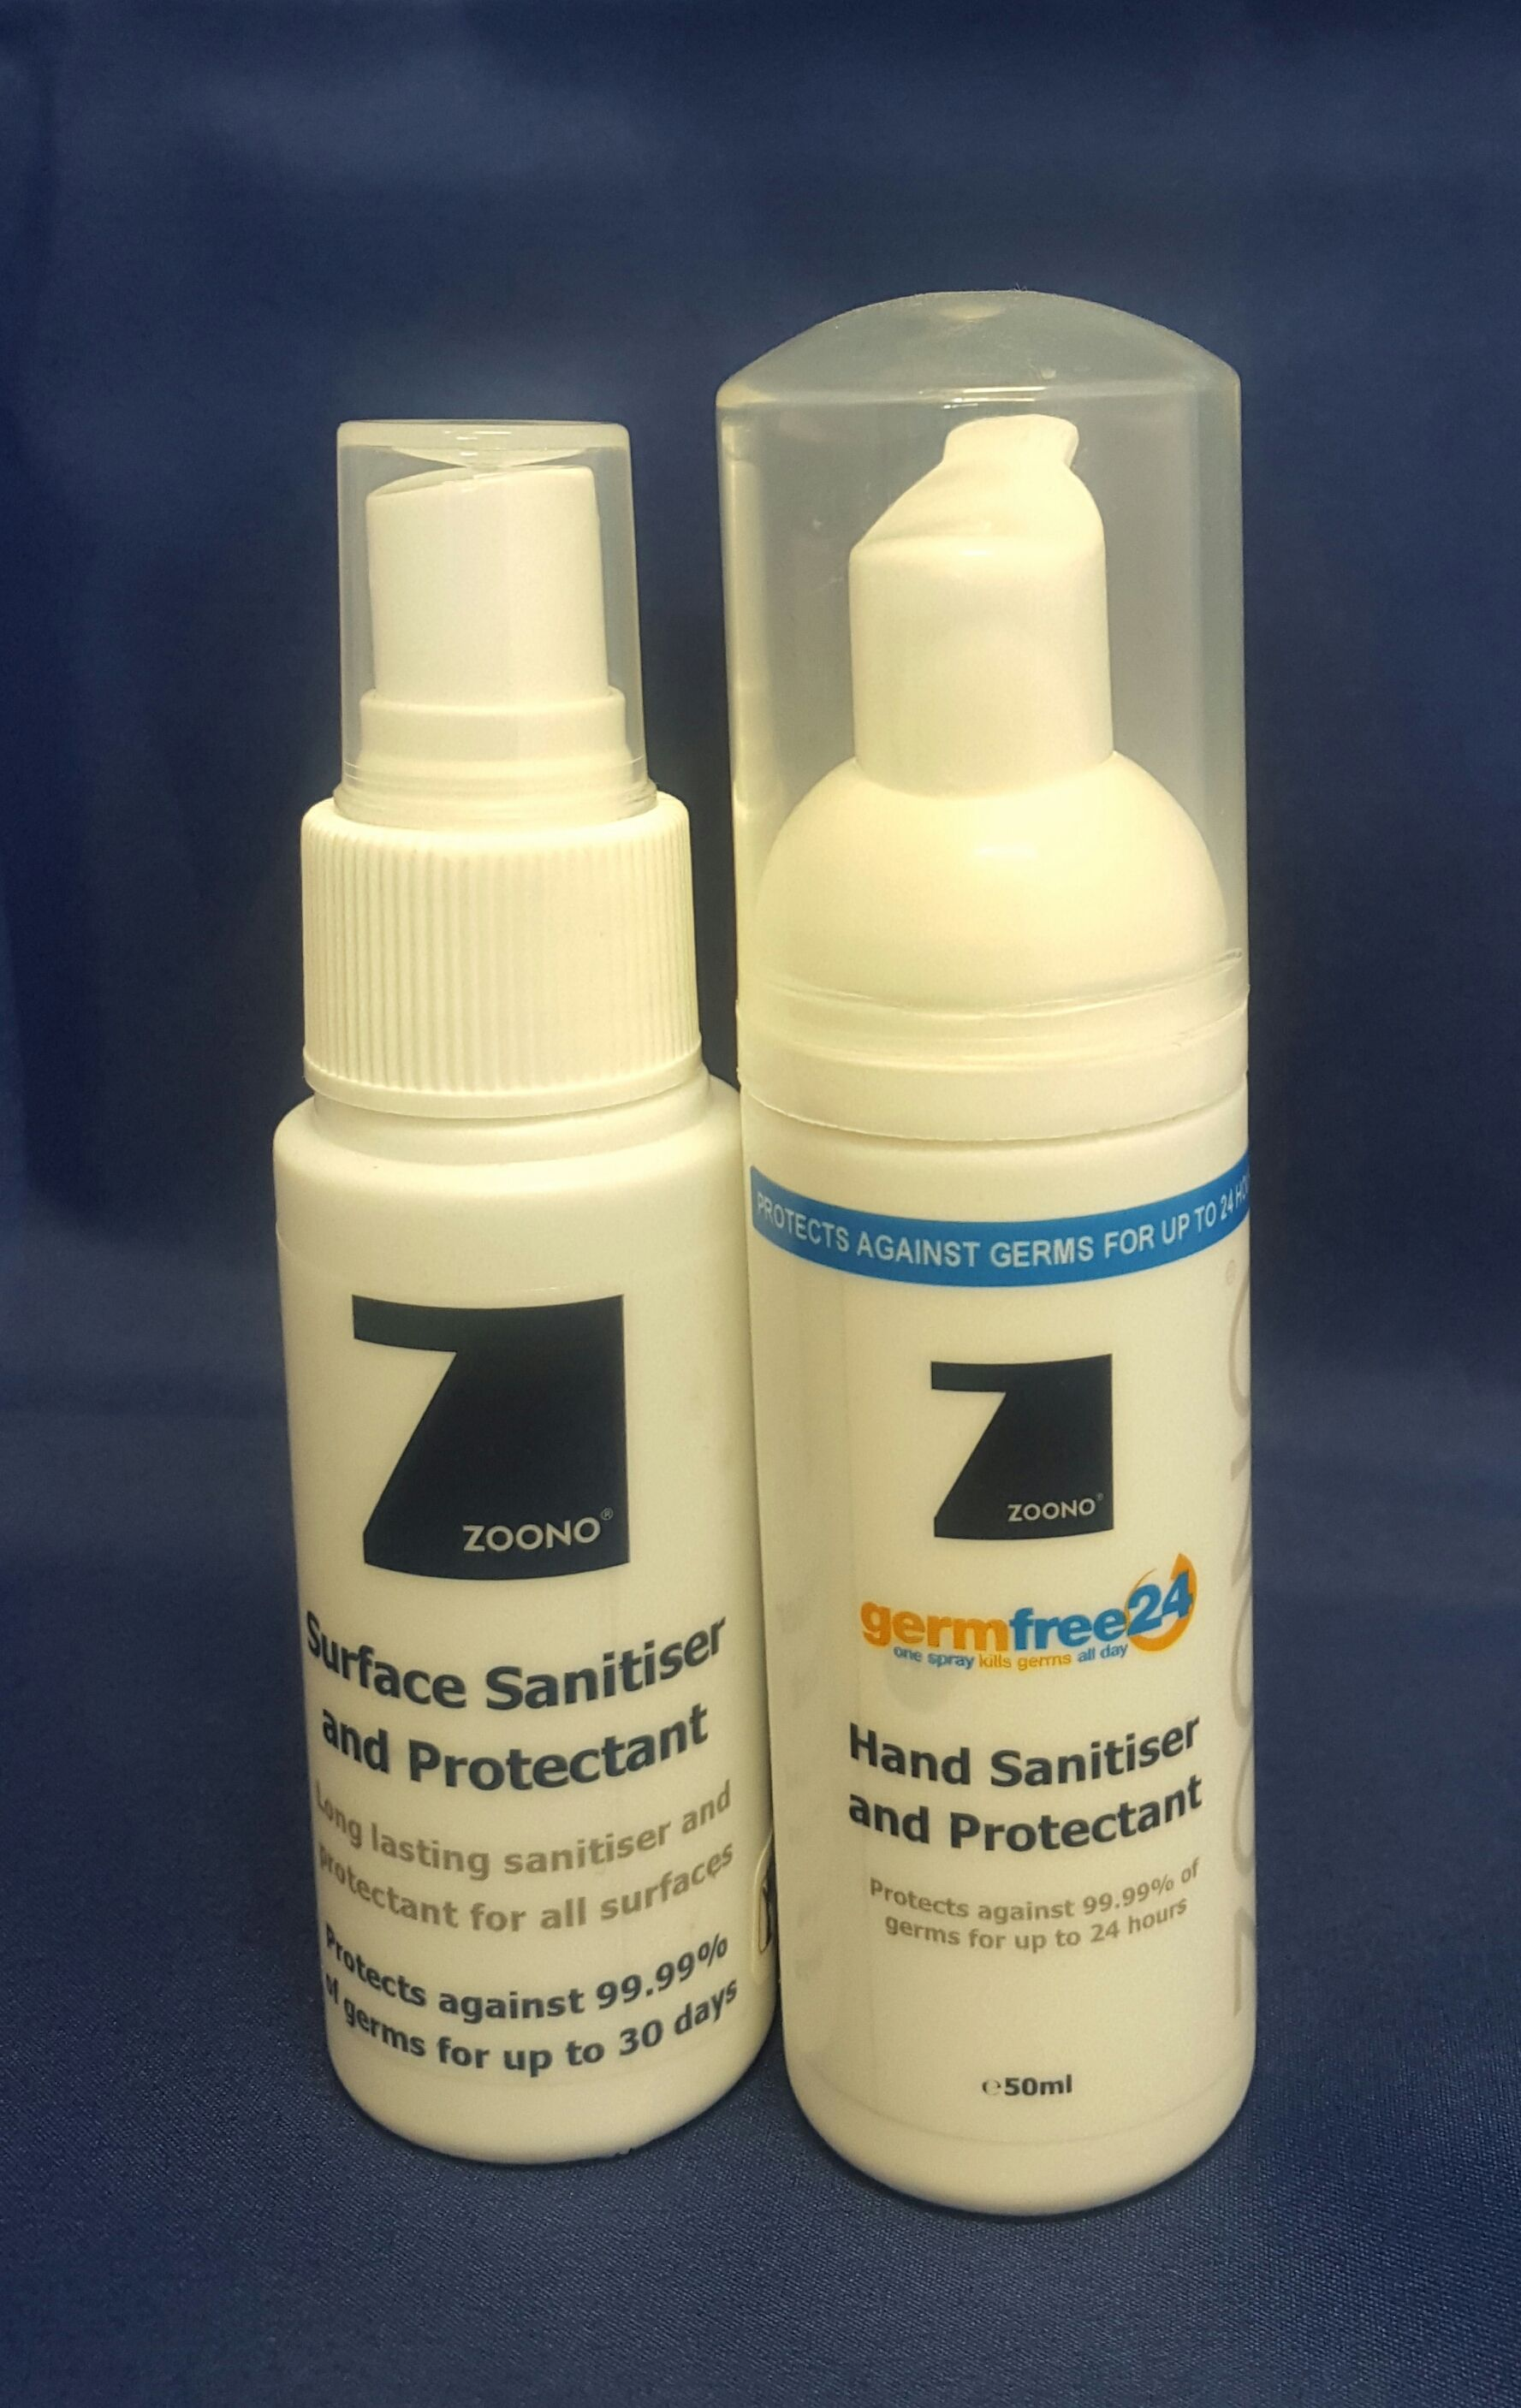 Zoono Travel Pack Includes 50ml Germfree24 Hand Sanitiser And